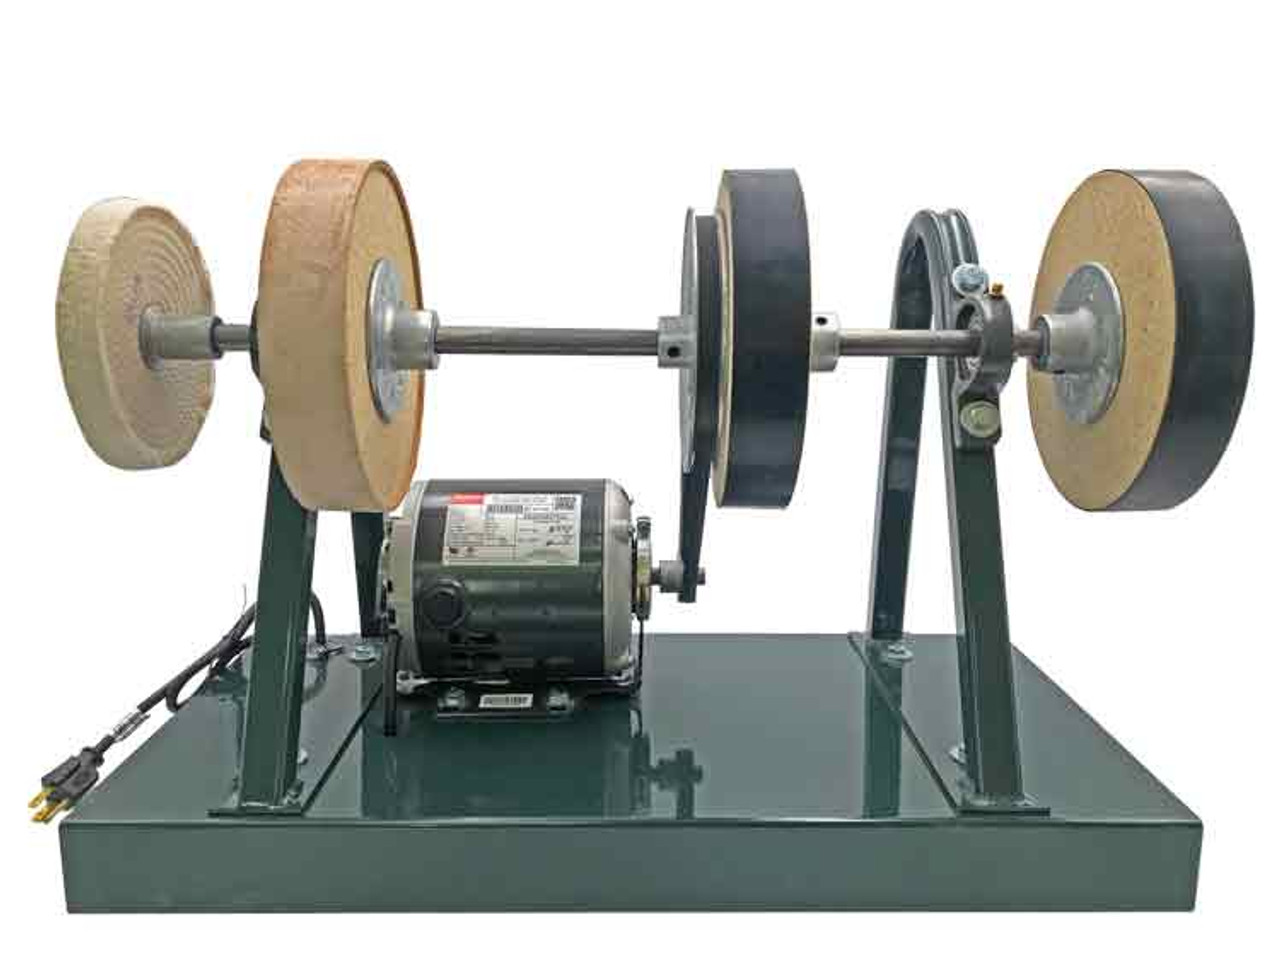 Burke Original Sharpening System shown complete from the front view with frame, motor, Sharpening wheels, Stropping wheel and buffing wheel.